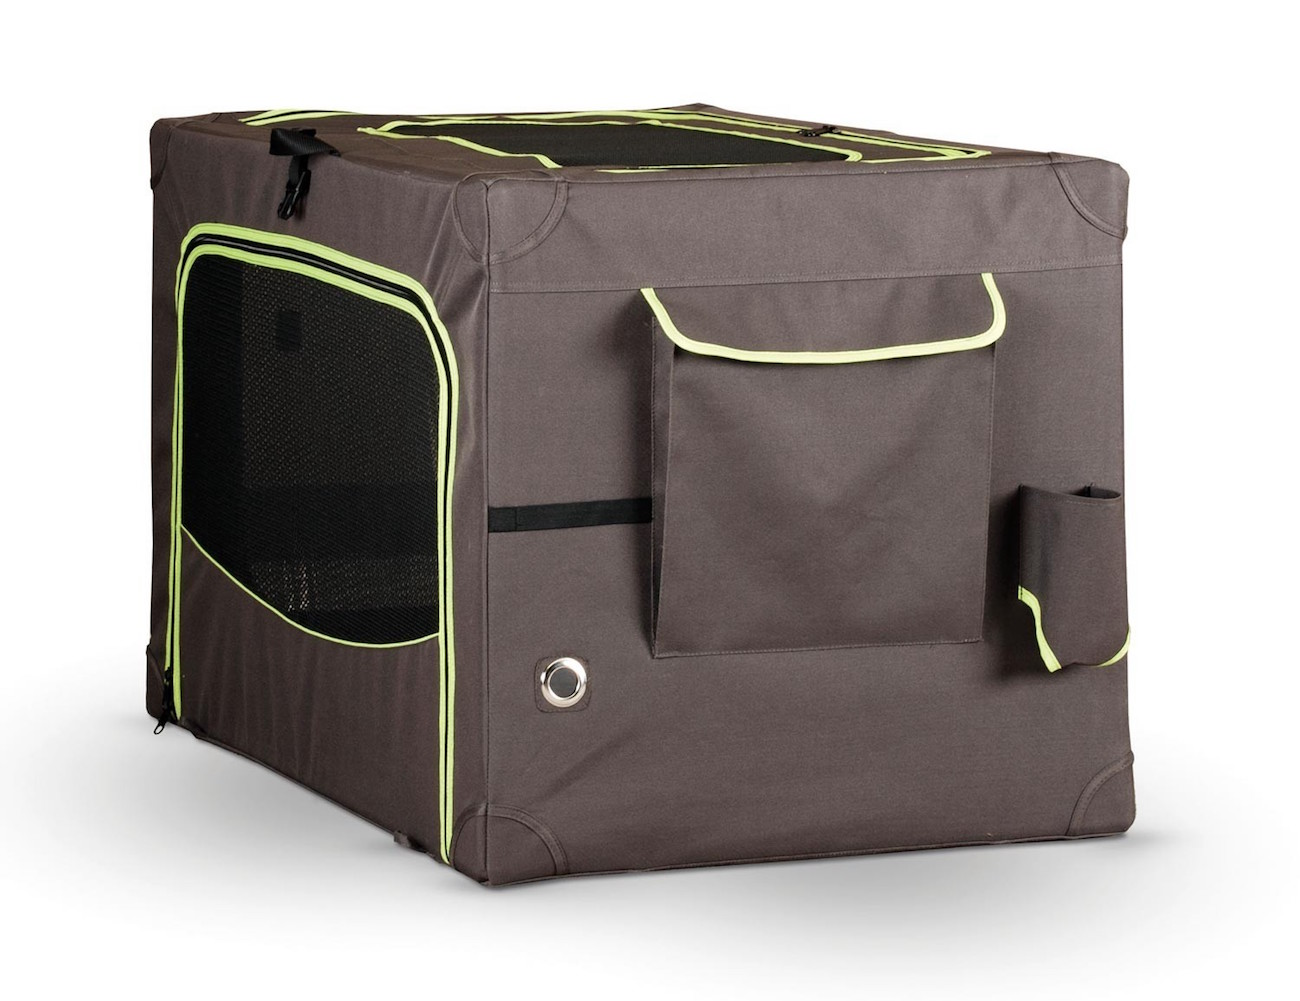 Classy Go Soft Crate by K&H